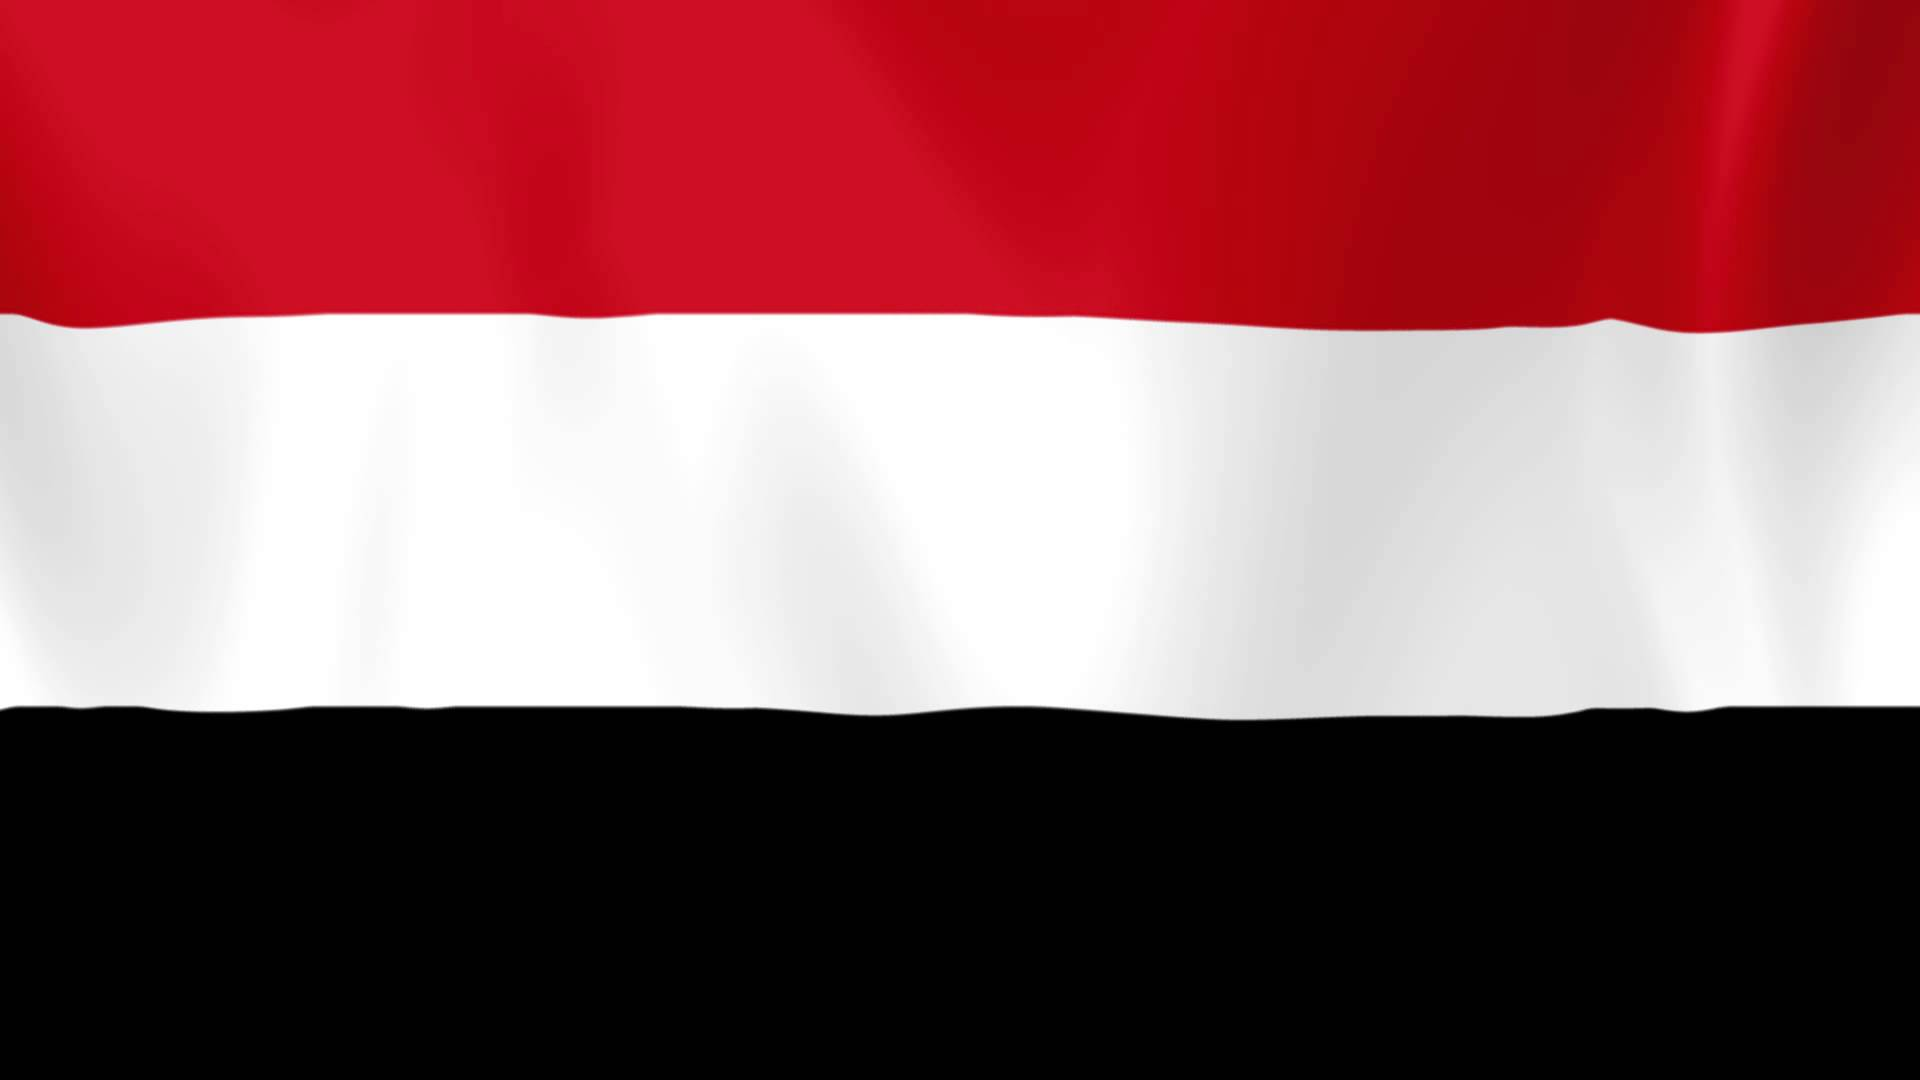 Yemen National Flag